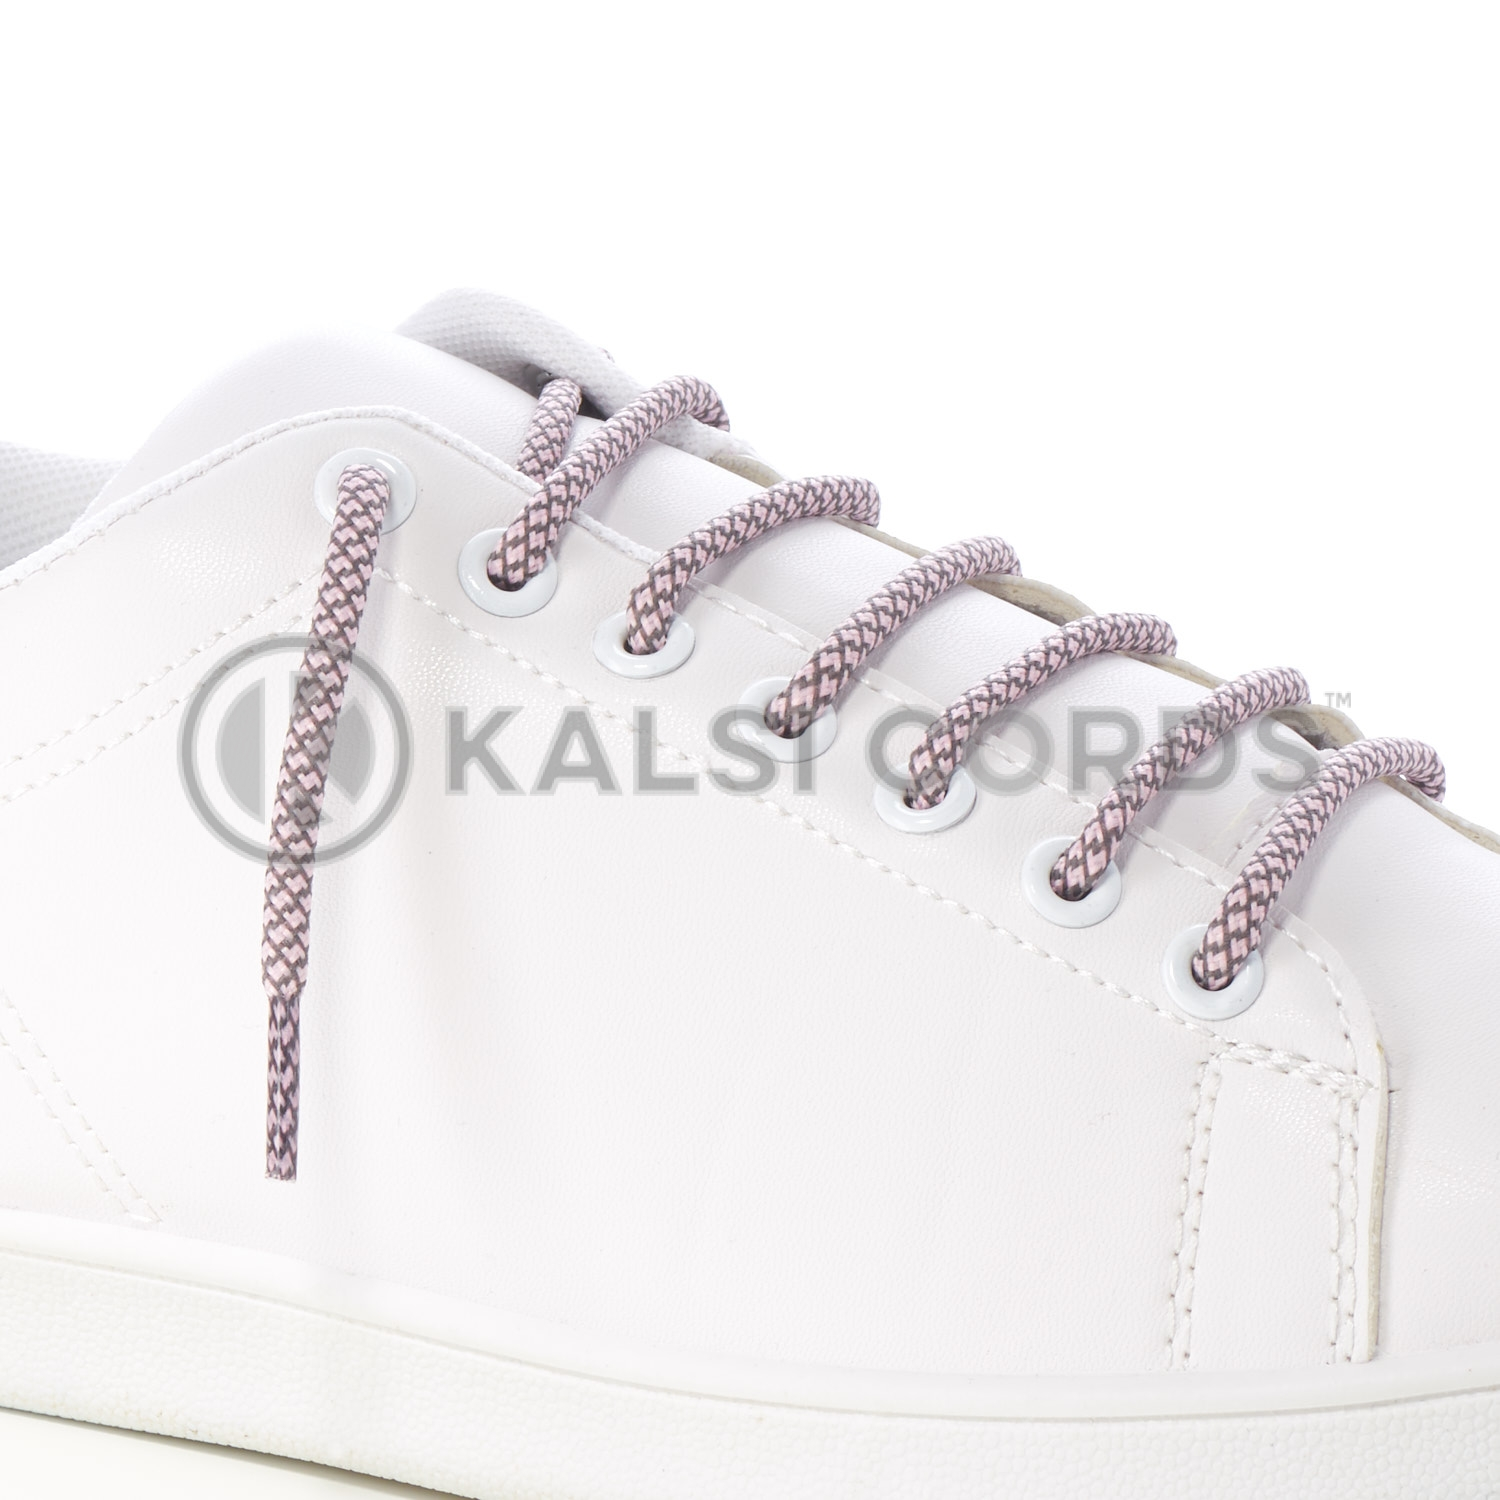 T655 5mm Round Cord Honeycomb Shoe Lace Baby Pink Grey Kids Trainers Adults Adidas Yeezy Boost Hiking Walking Boots Kalsi Cords